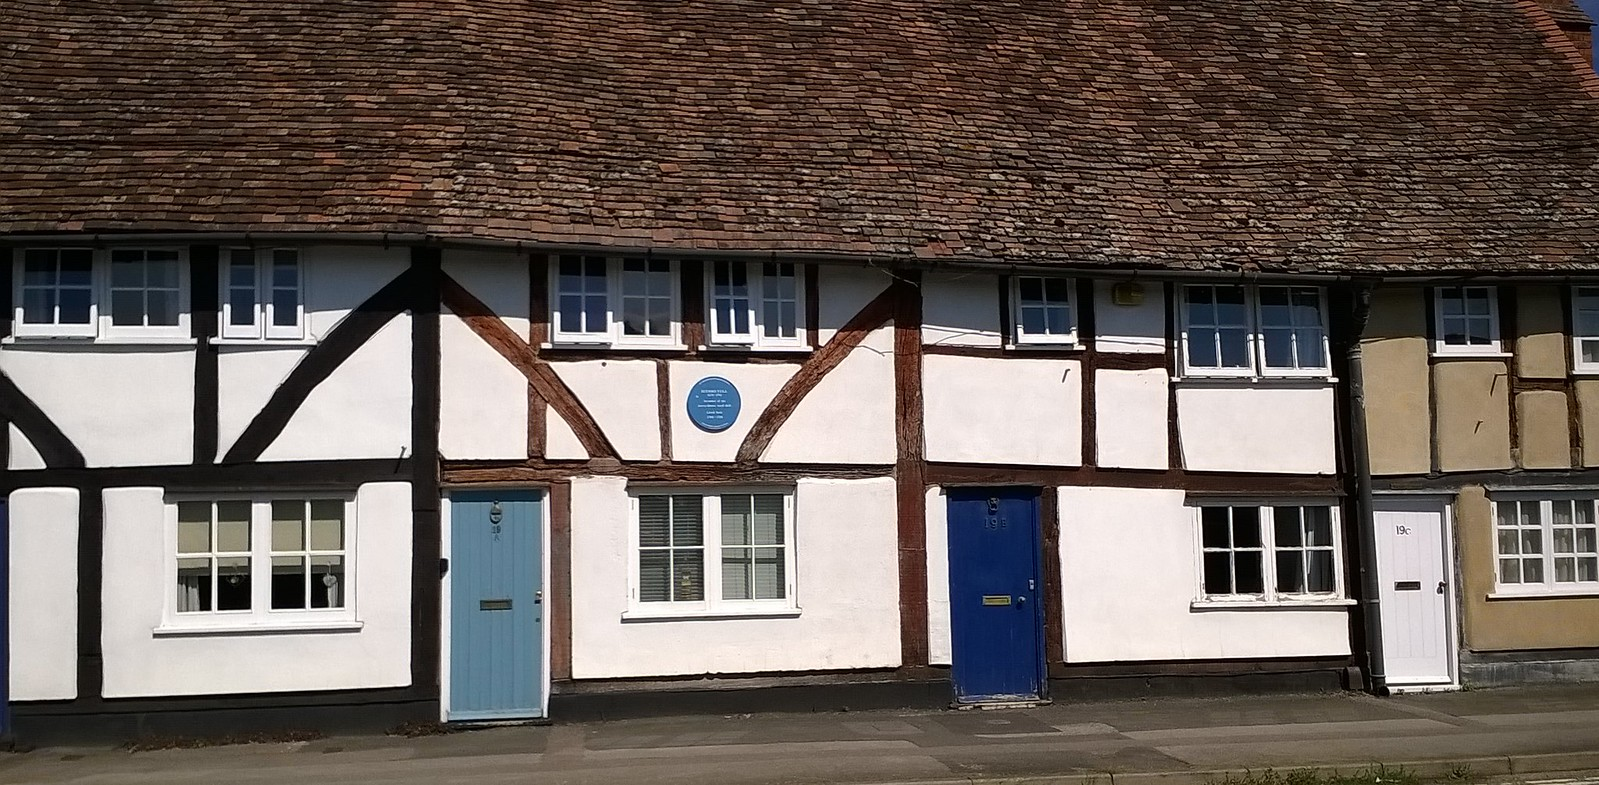 Jethro Tull's house Crowmarsh Gifford, Wallingford